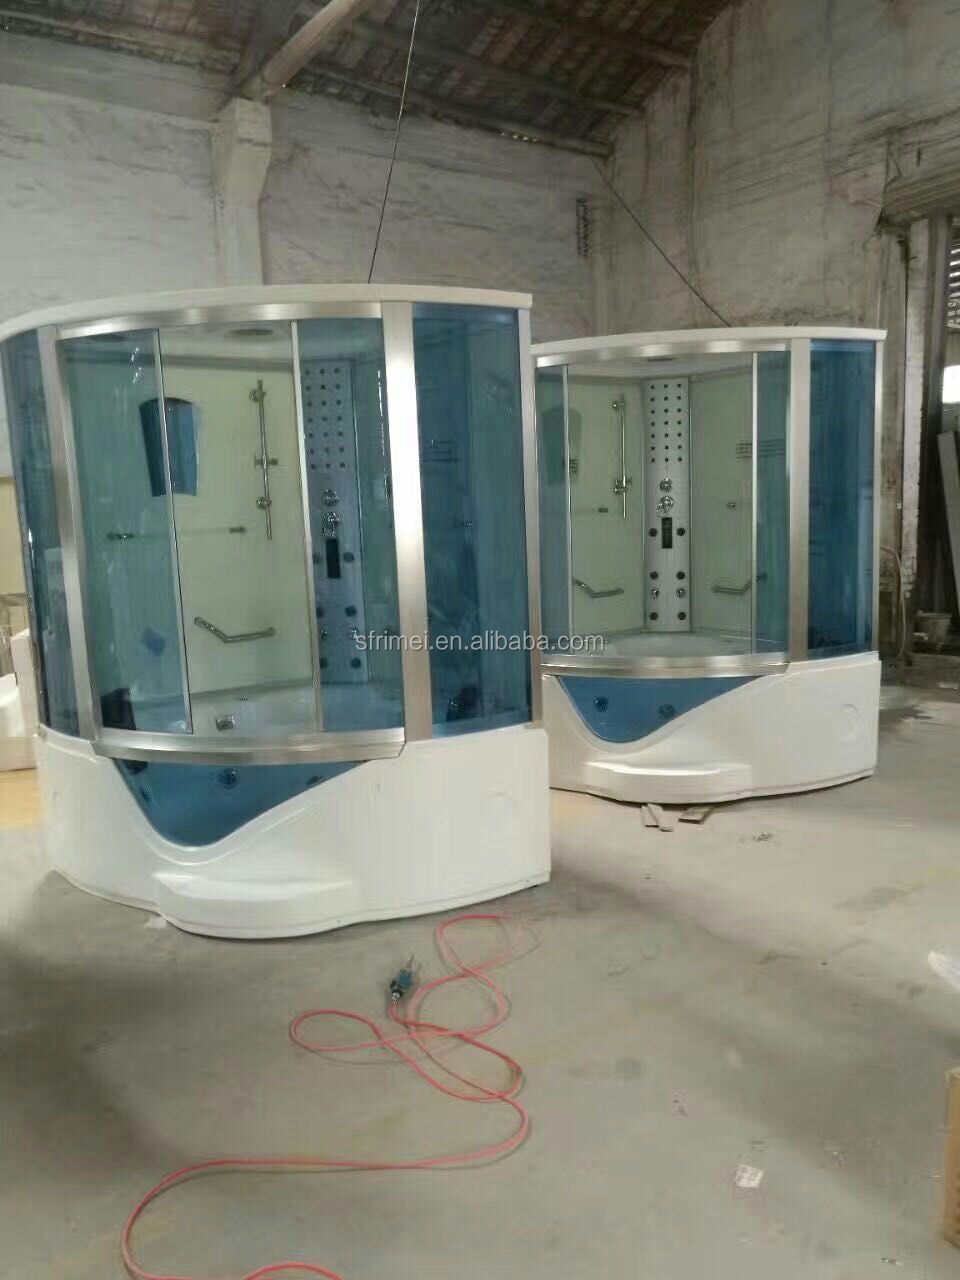 K-7081 Foshan Factory Sliding Door Steam Shower Room With Hot Tub